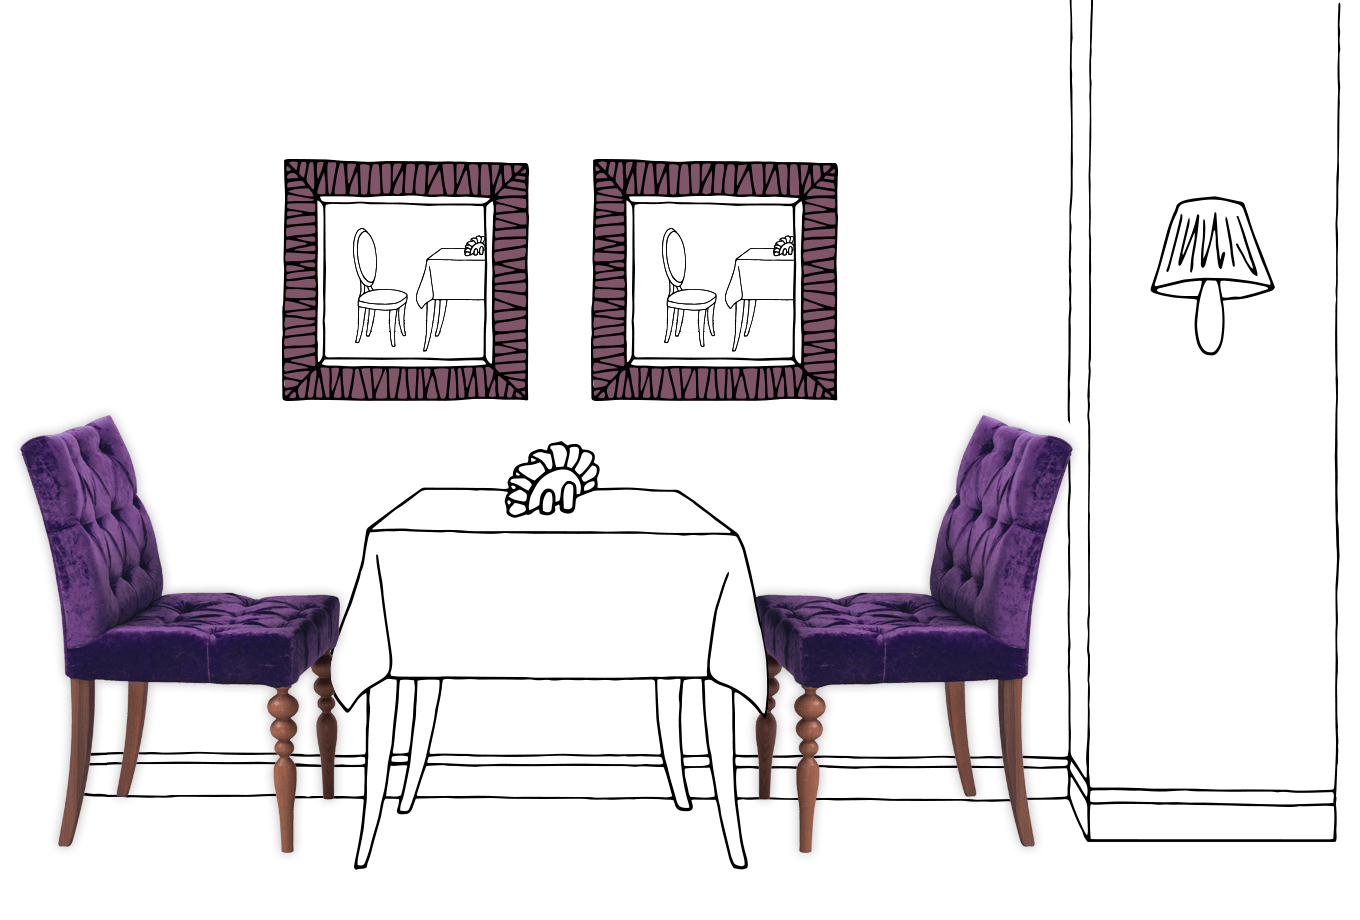 restaurant and café insurance illustration of table and chairs